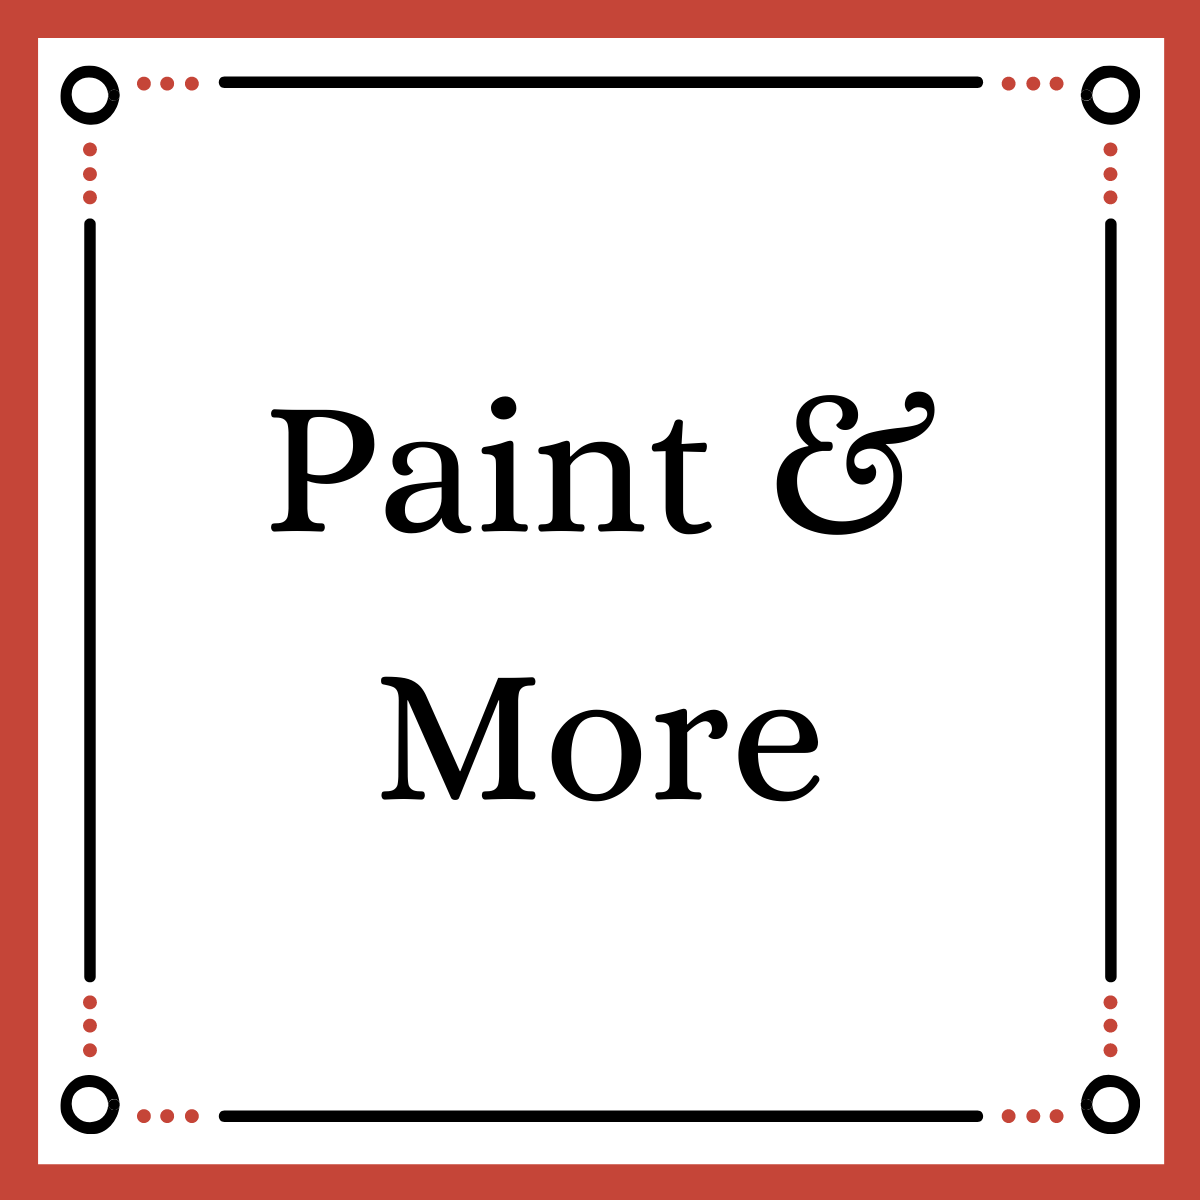 Paint & More